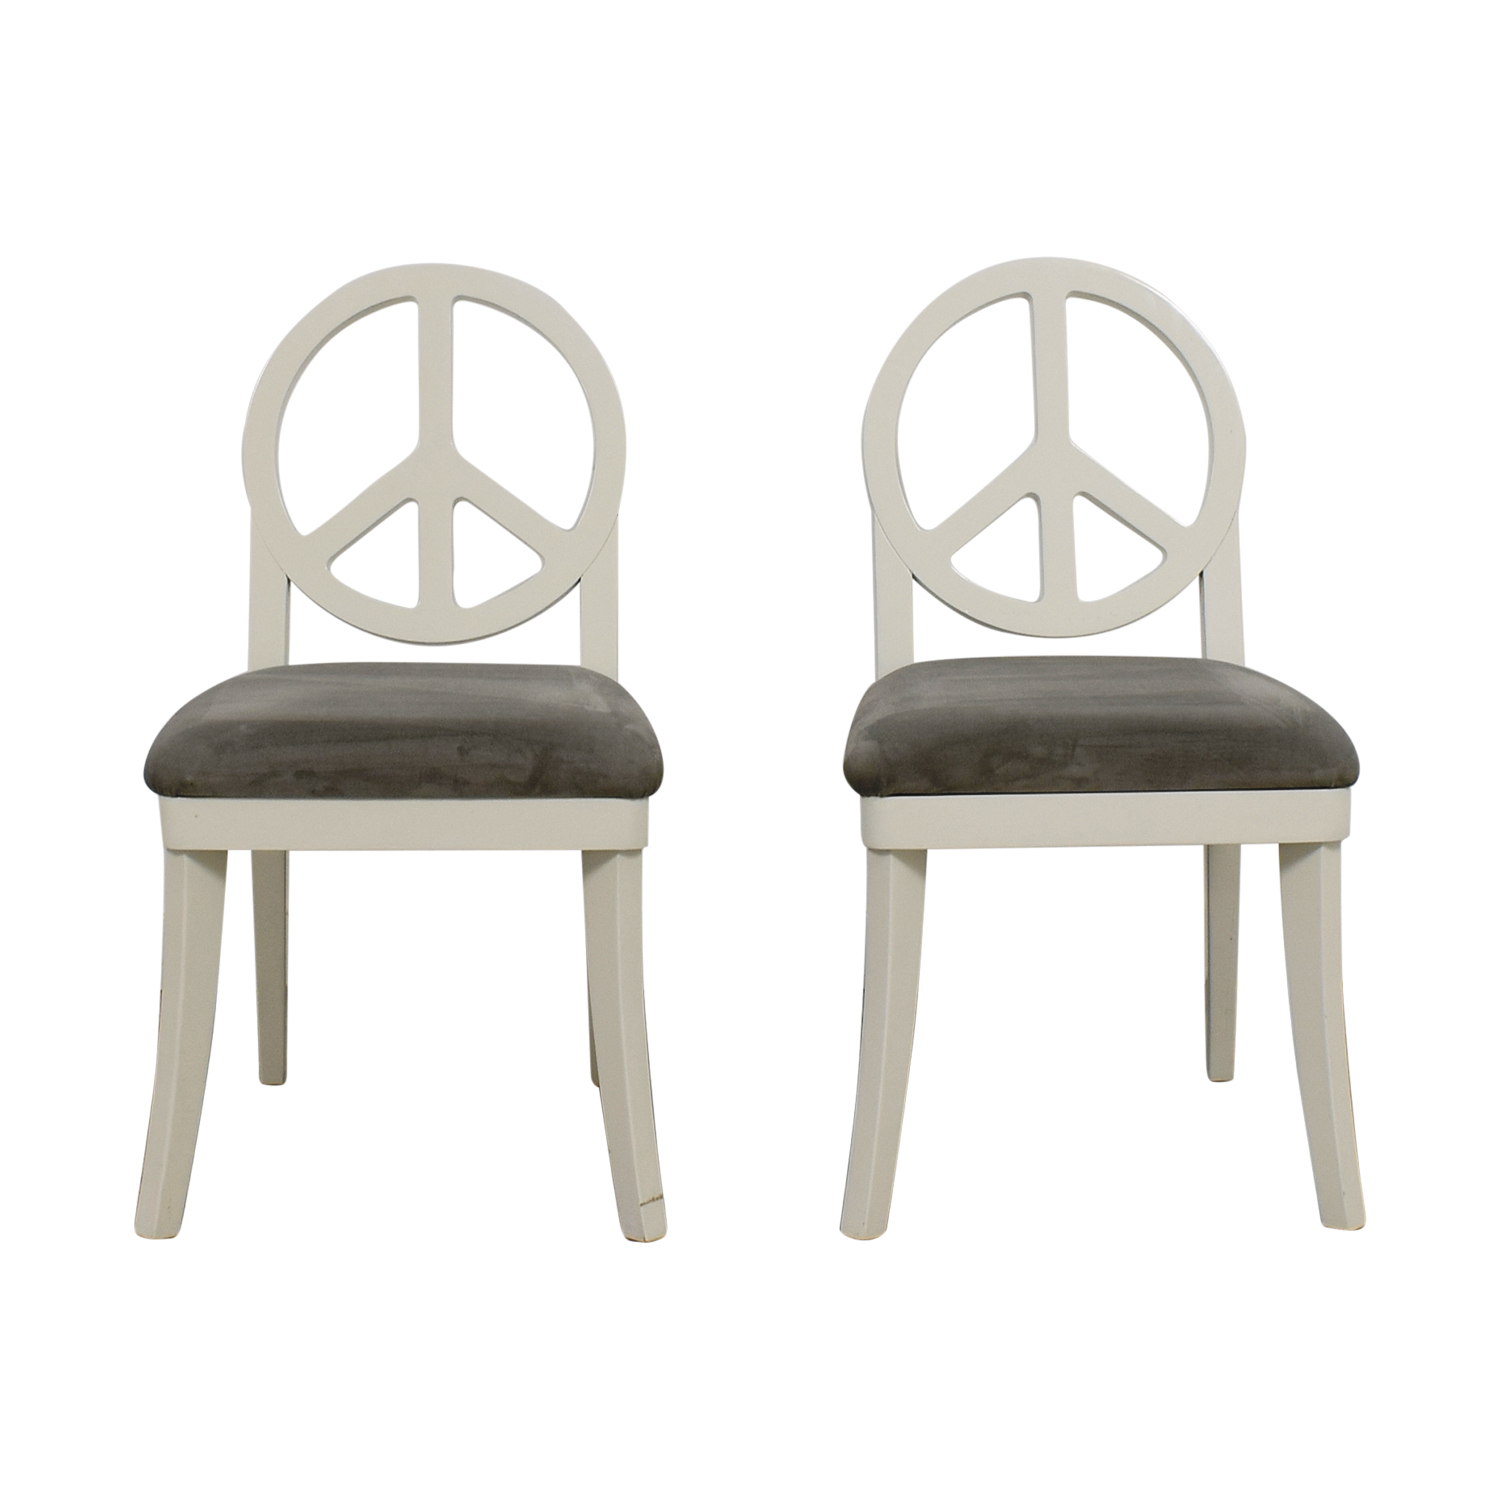 Happy Chic by Jonathan Adler Happy Chic by Jonathan Adler White and Grey Peace Sign Accent Chairs coupon